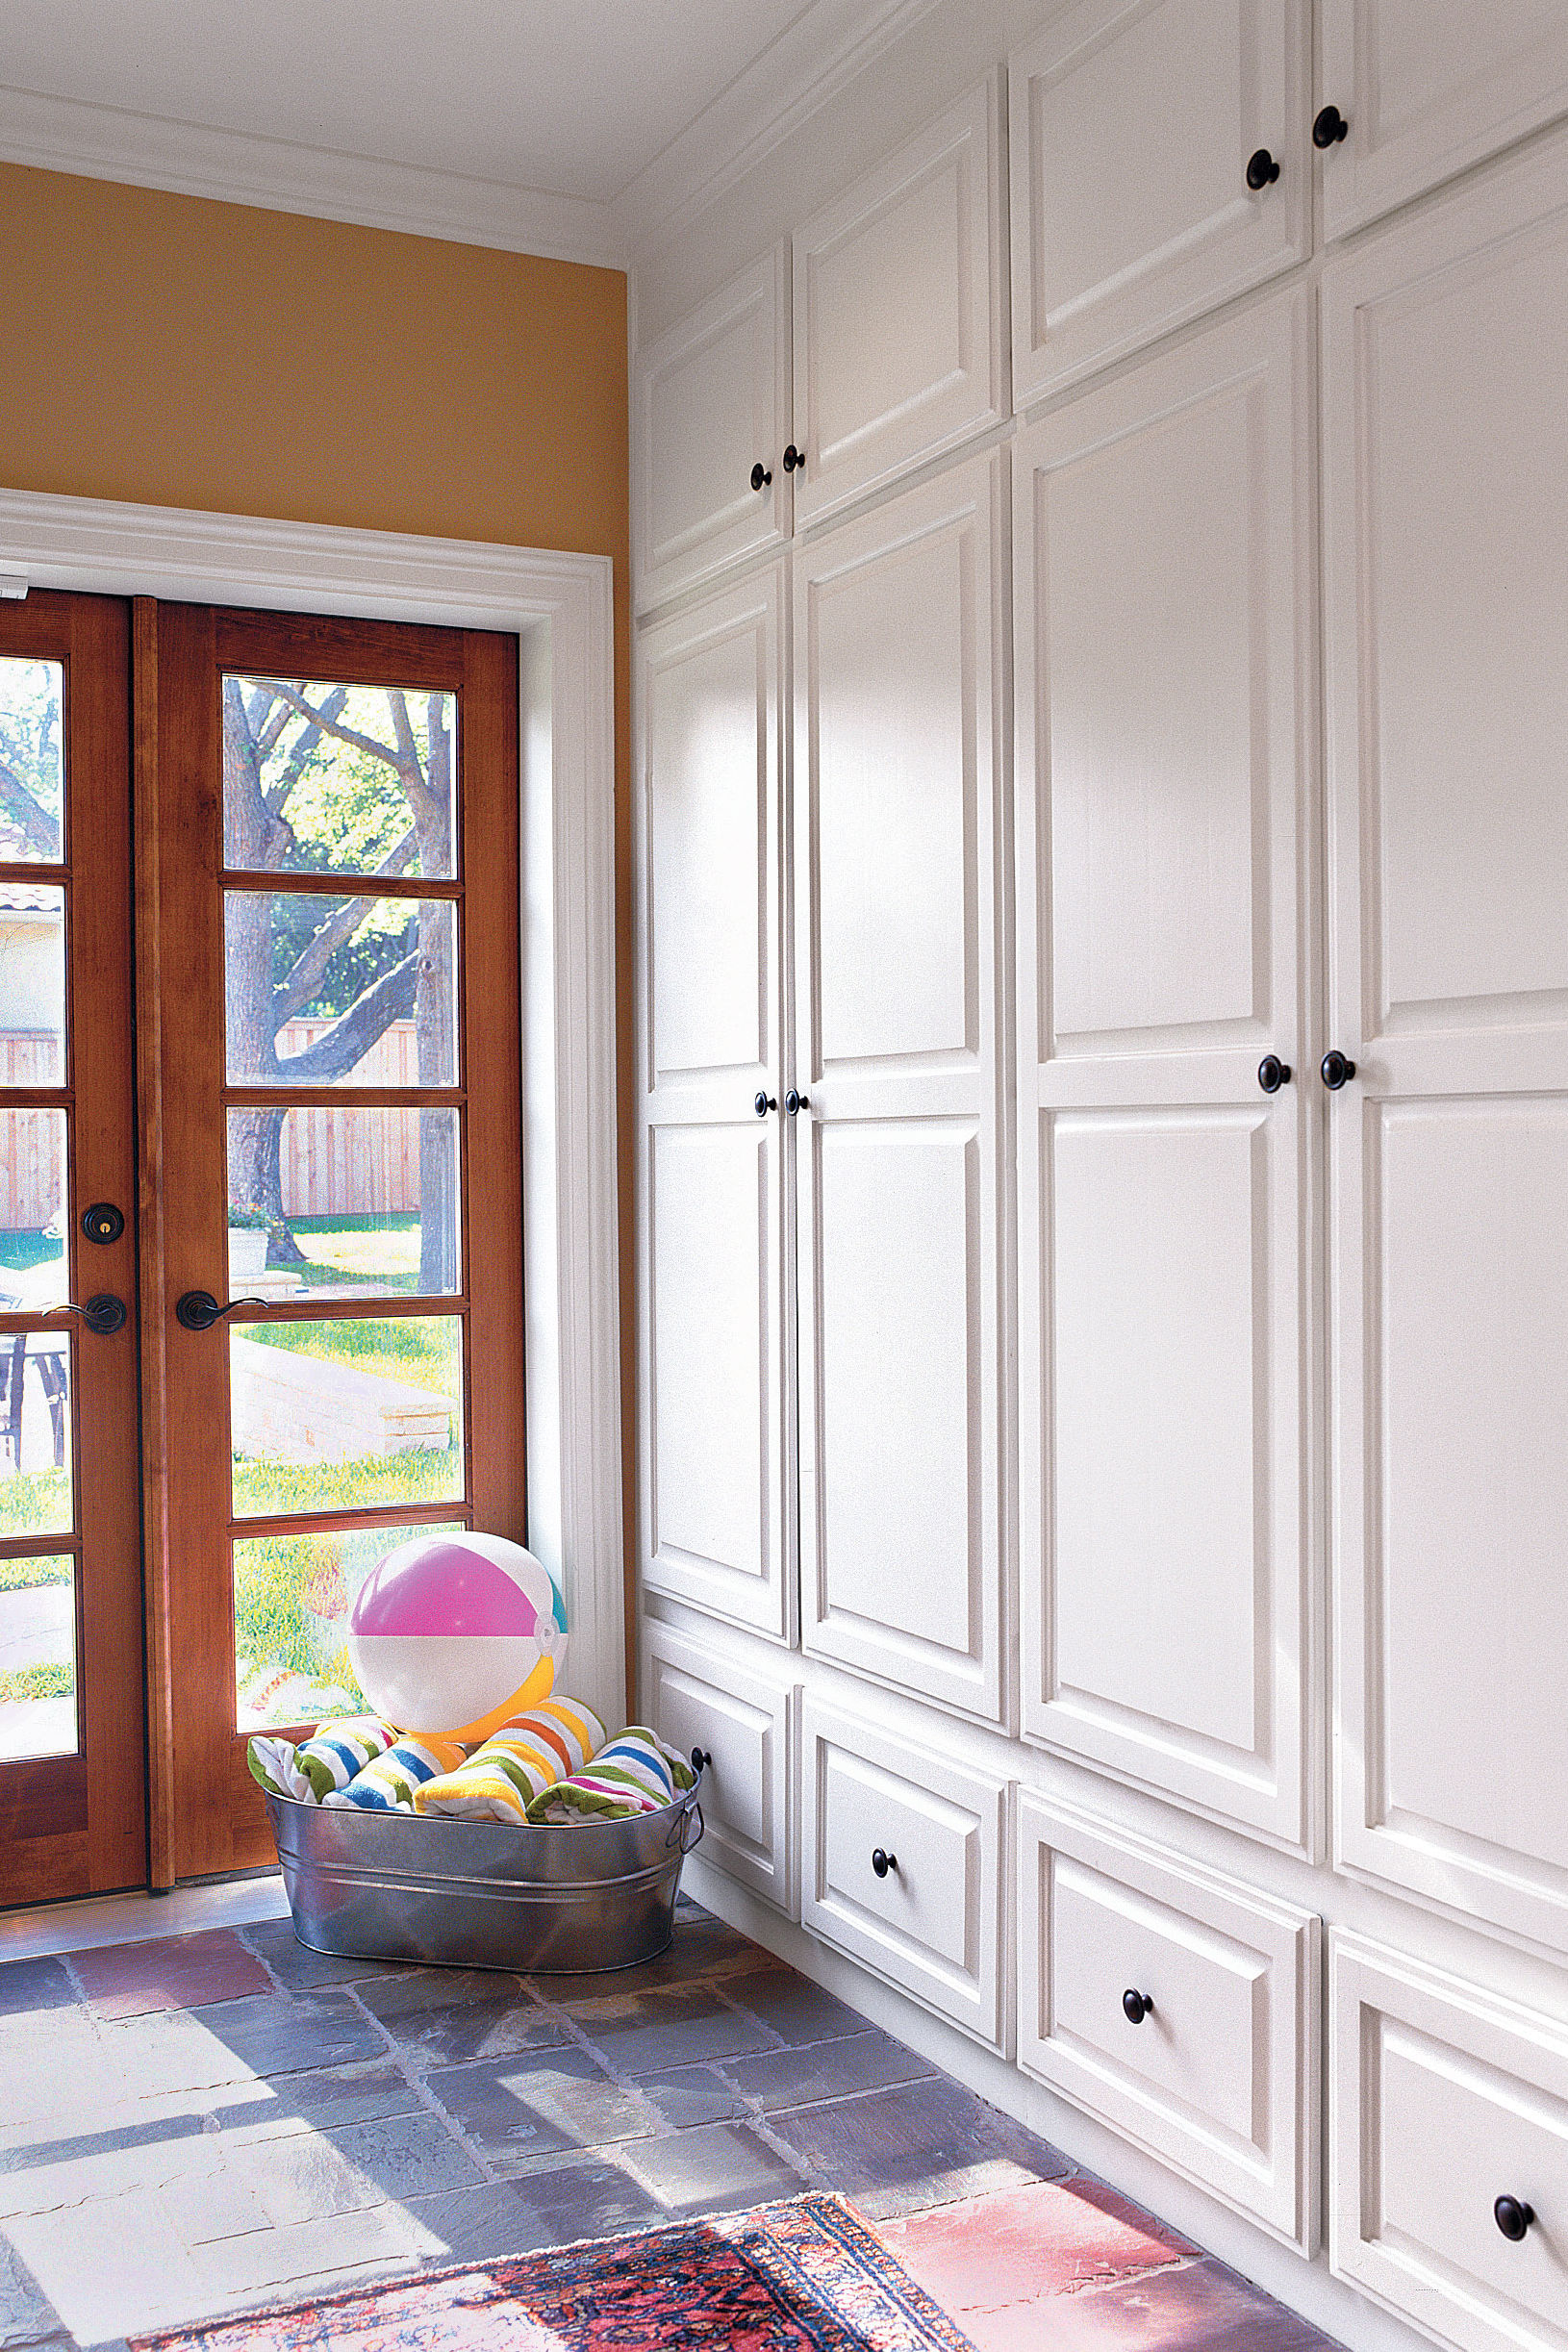 Mudroom Perfection: No More Clutter By the Door